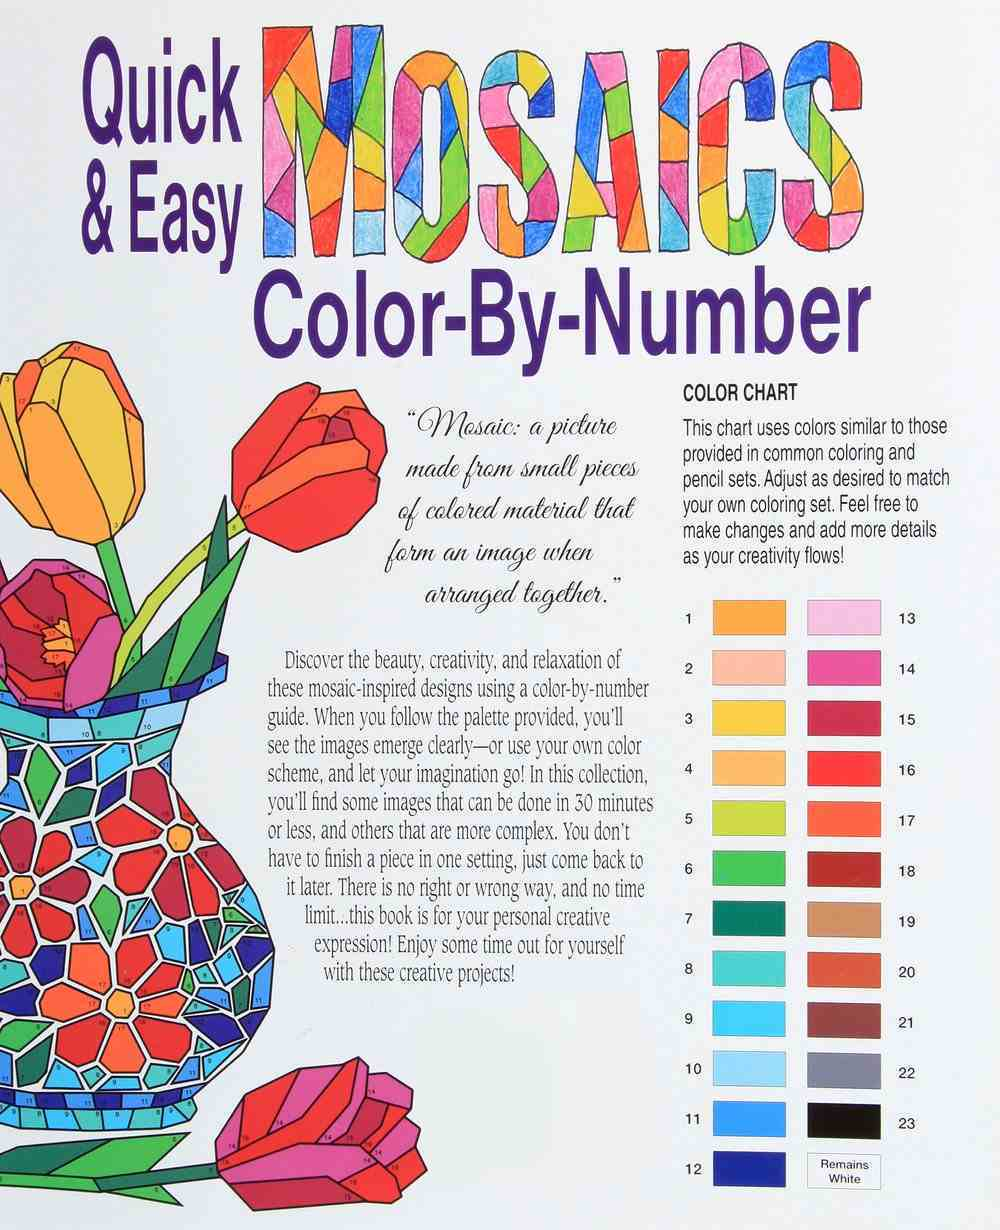 Quick & Easy Mosaics Color By Number - Color Shape-By-Shape and See the Image Emerge! (Adult Coloring Books Series) Paperback